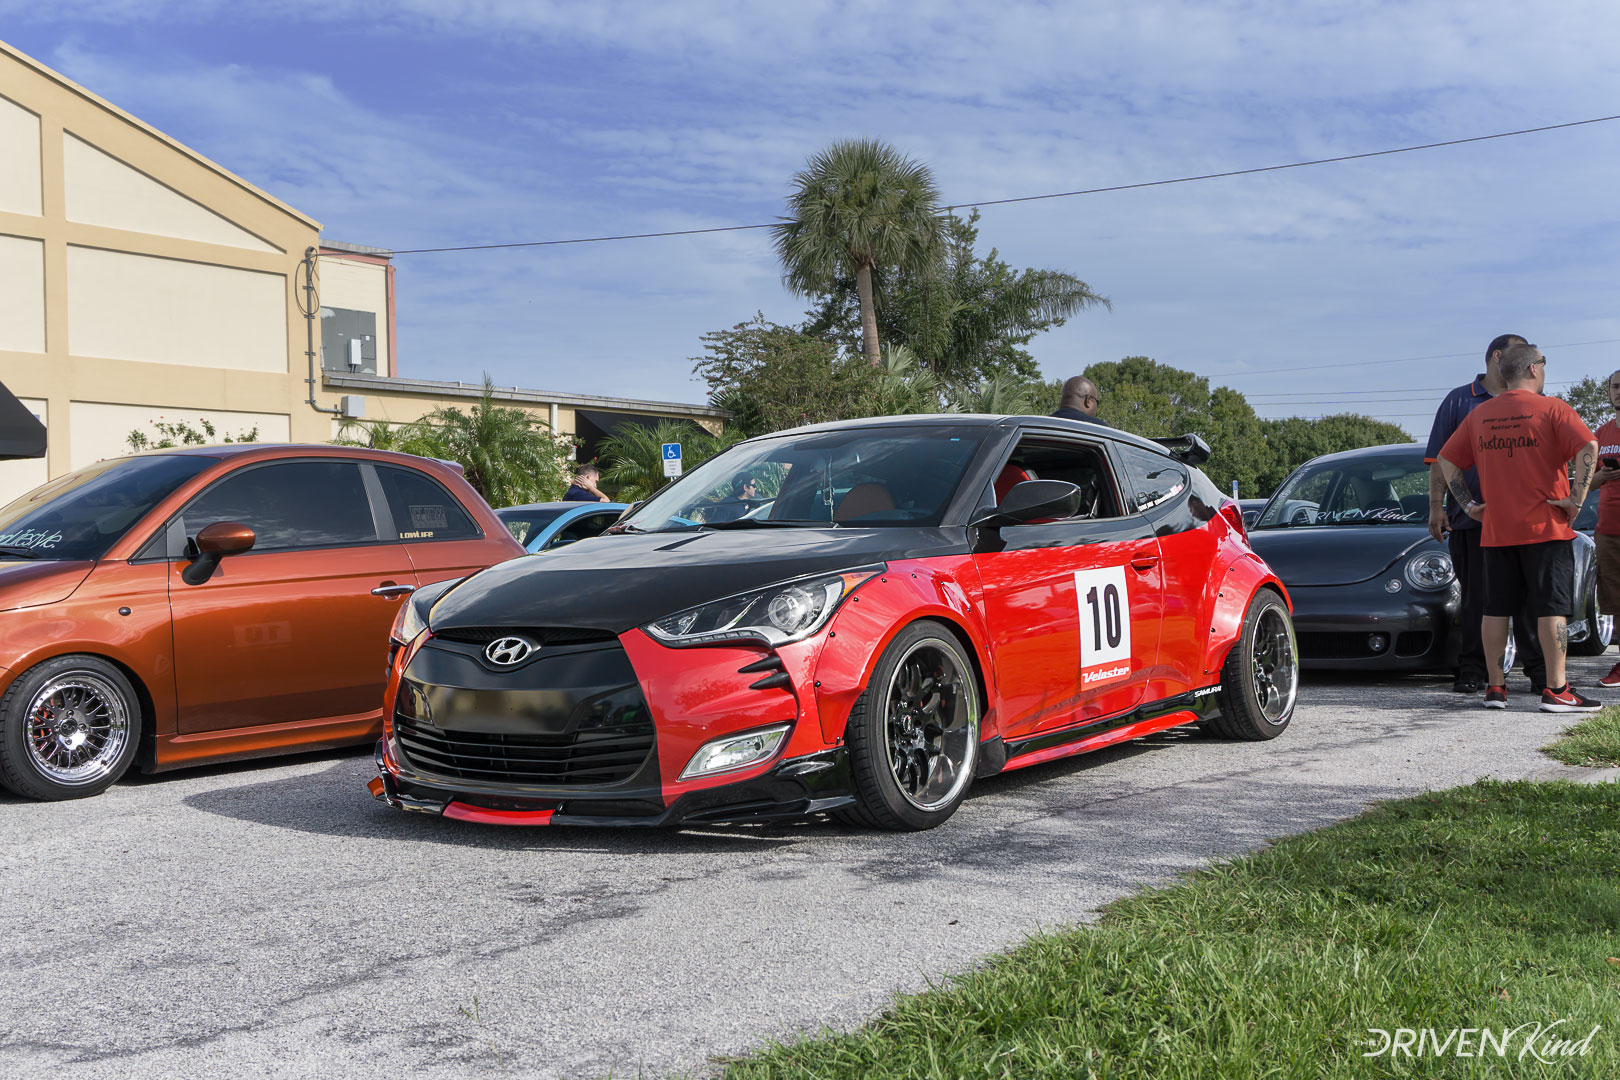 Hyundai Veloster Daily Driven Inc. Presents Florida's Finest Melbourne FL Auditorium coverage by The Driven Kind